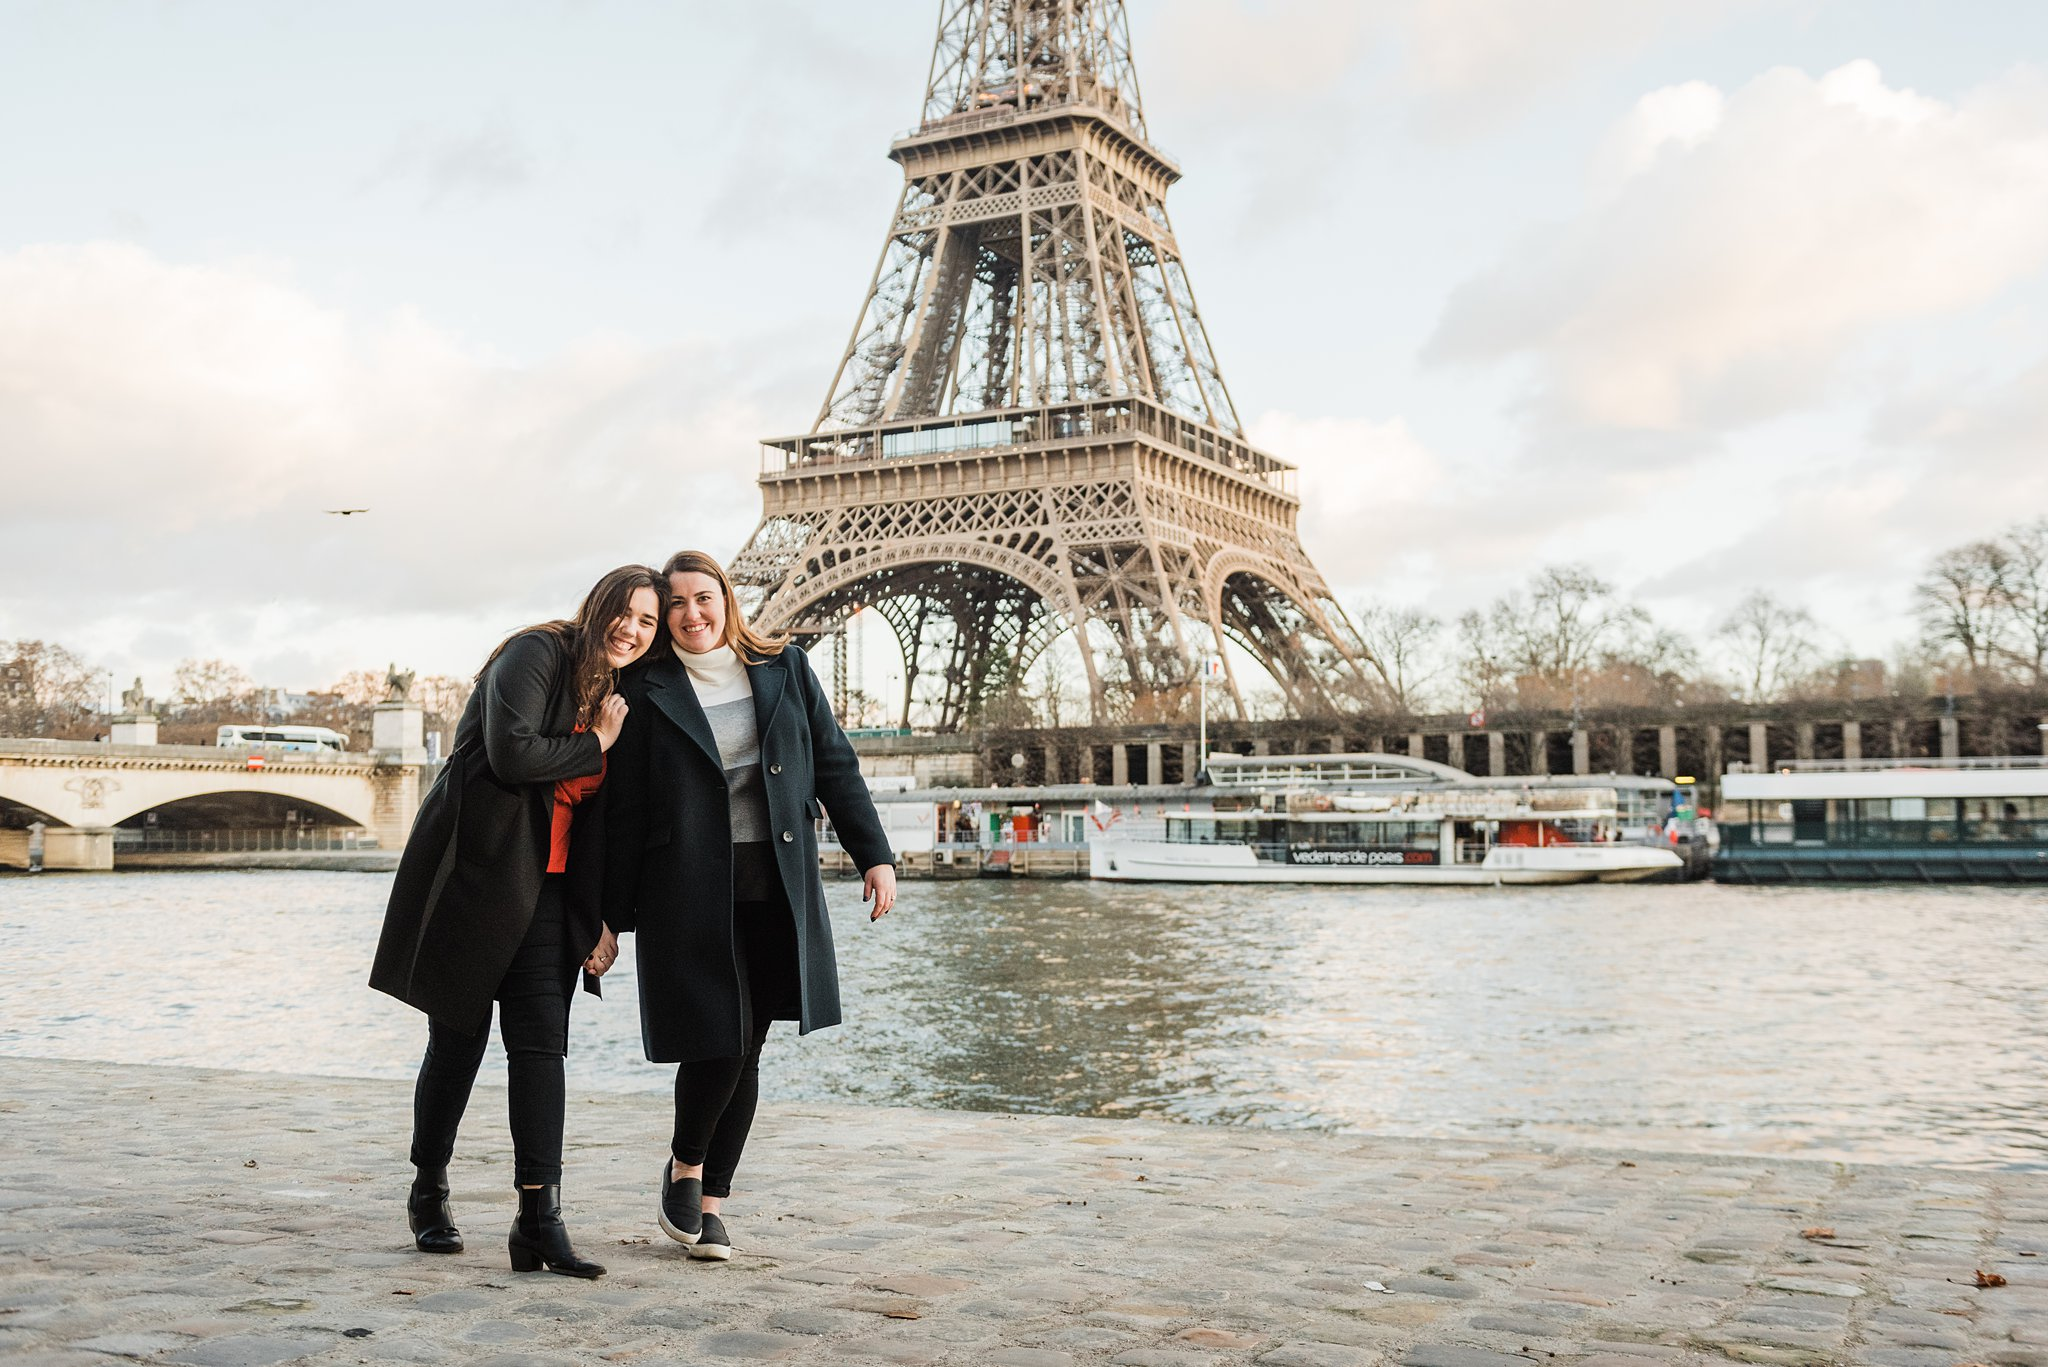 Sisters by the Seine river during a December photo shoot in Paris, as a study abroad activity and Christmas gift